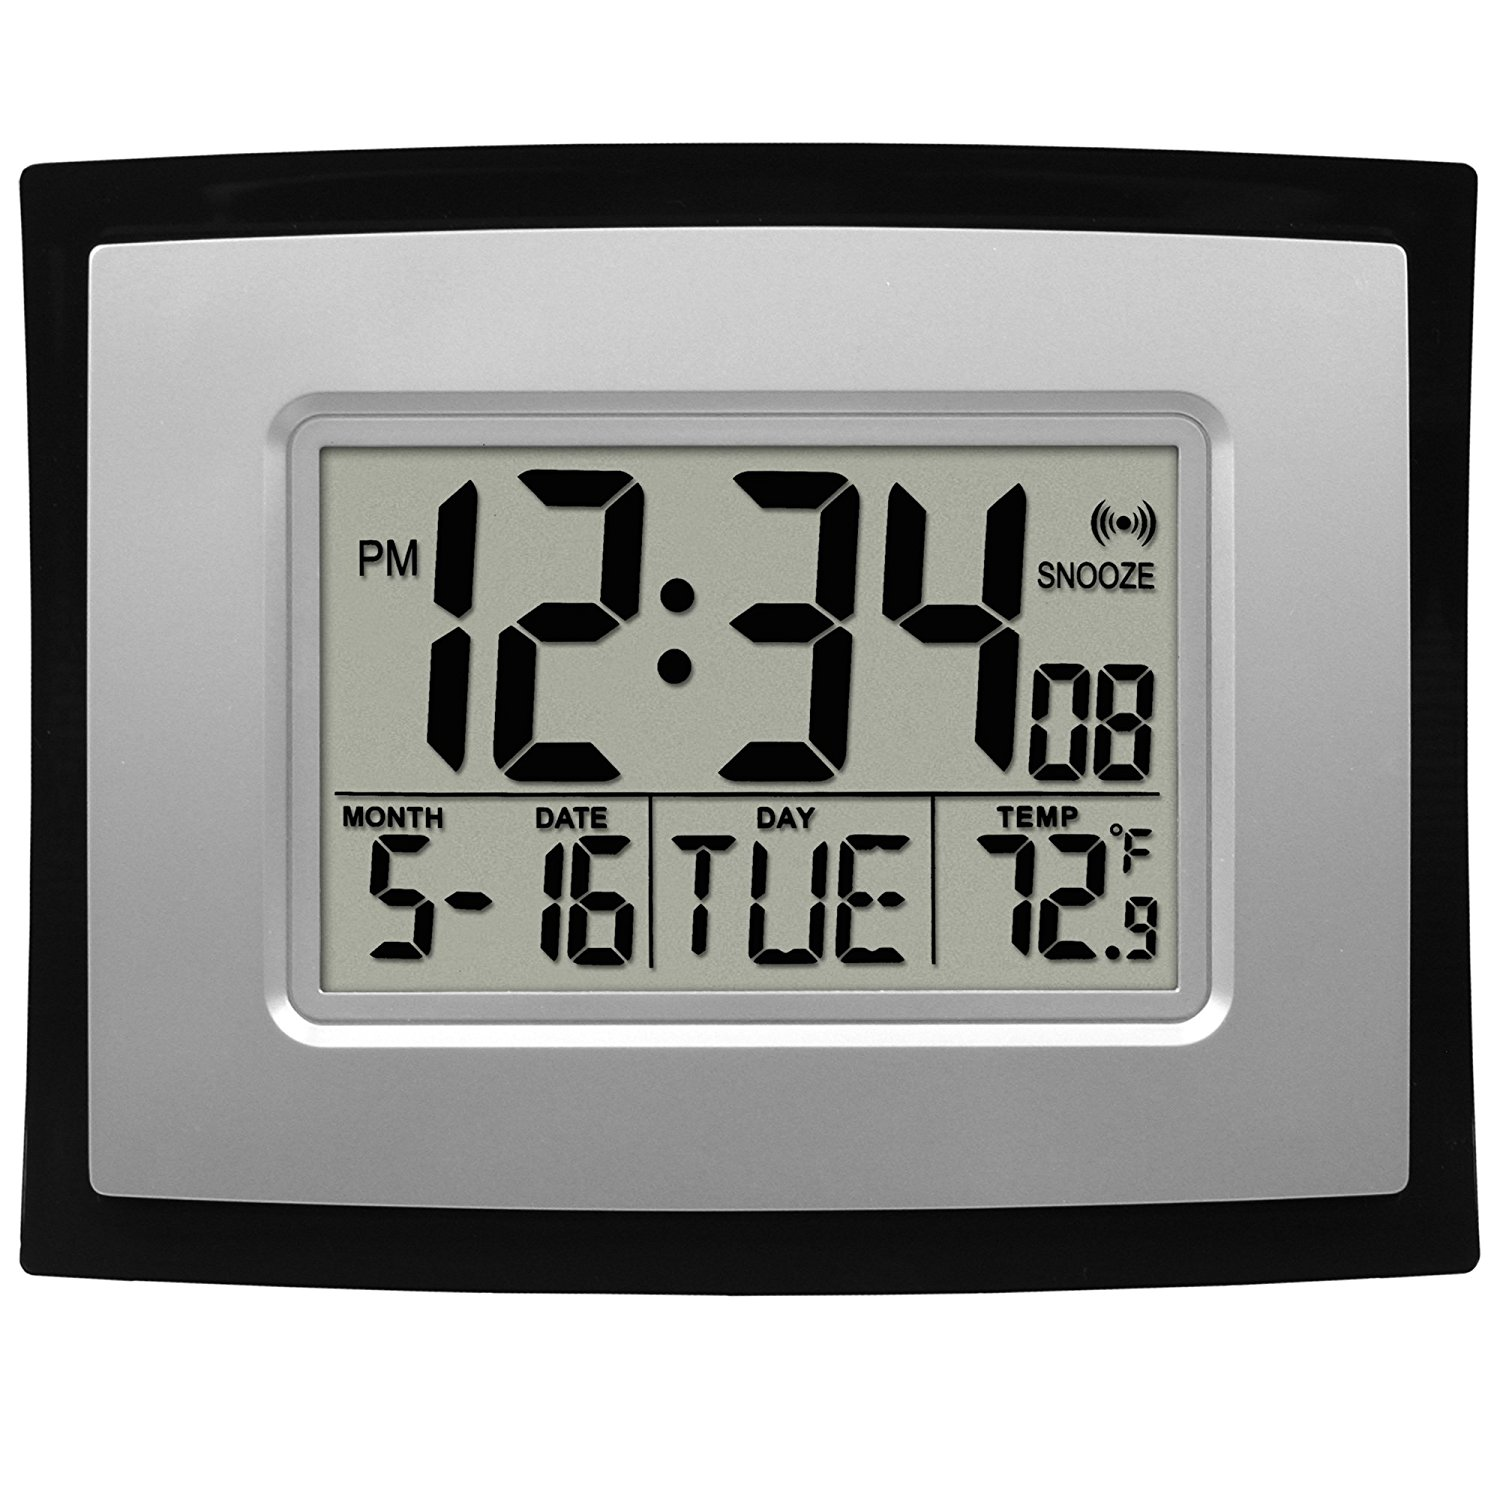 Electric Wall Clock Review Know Time Better Homeindec